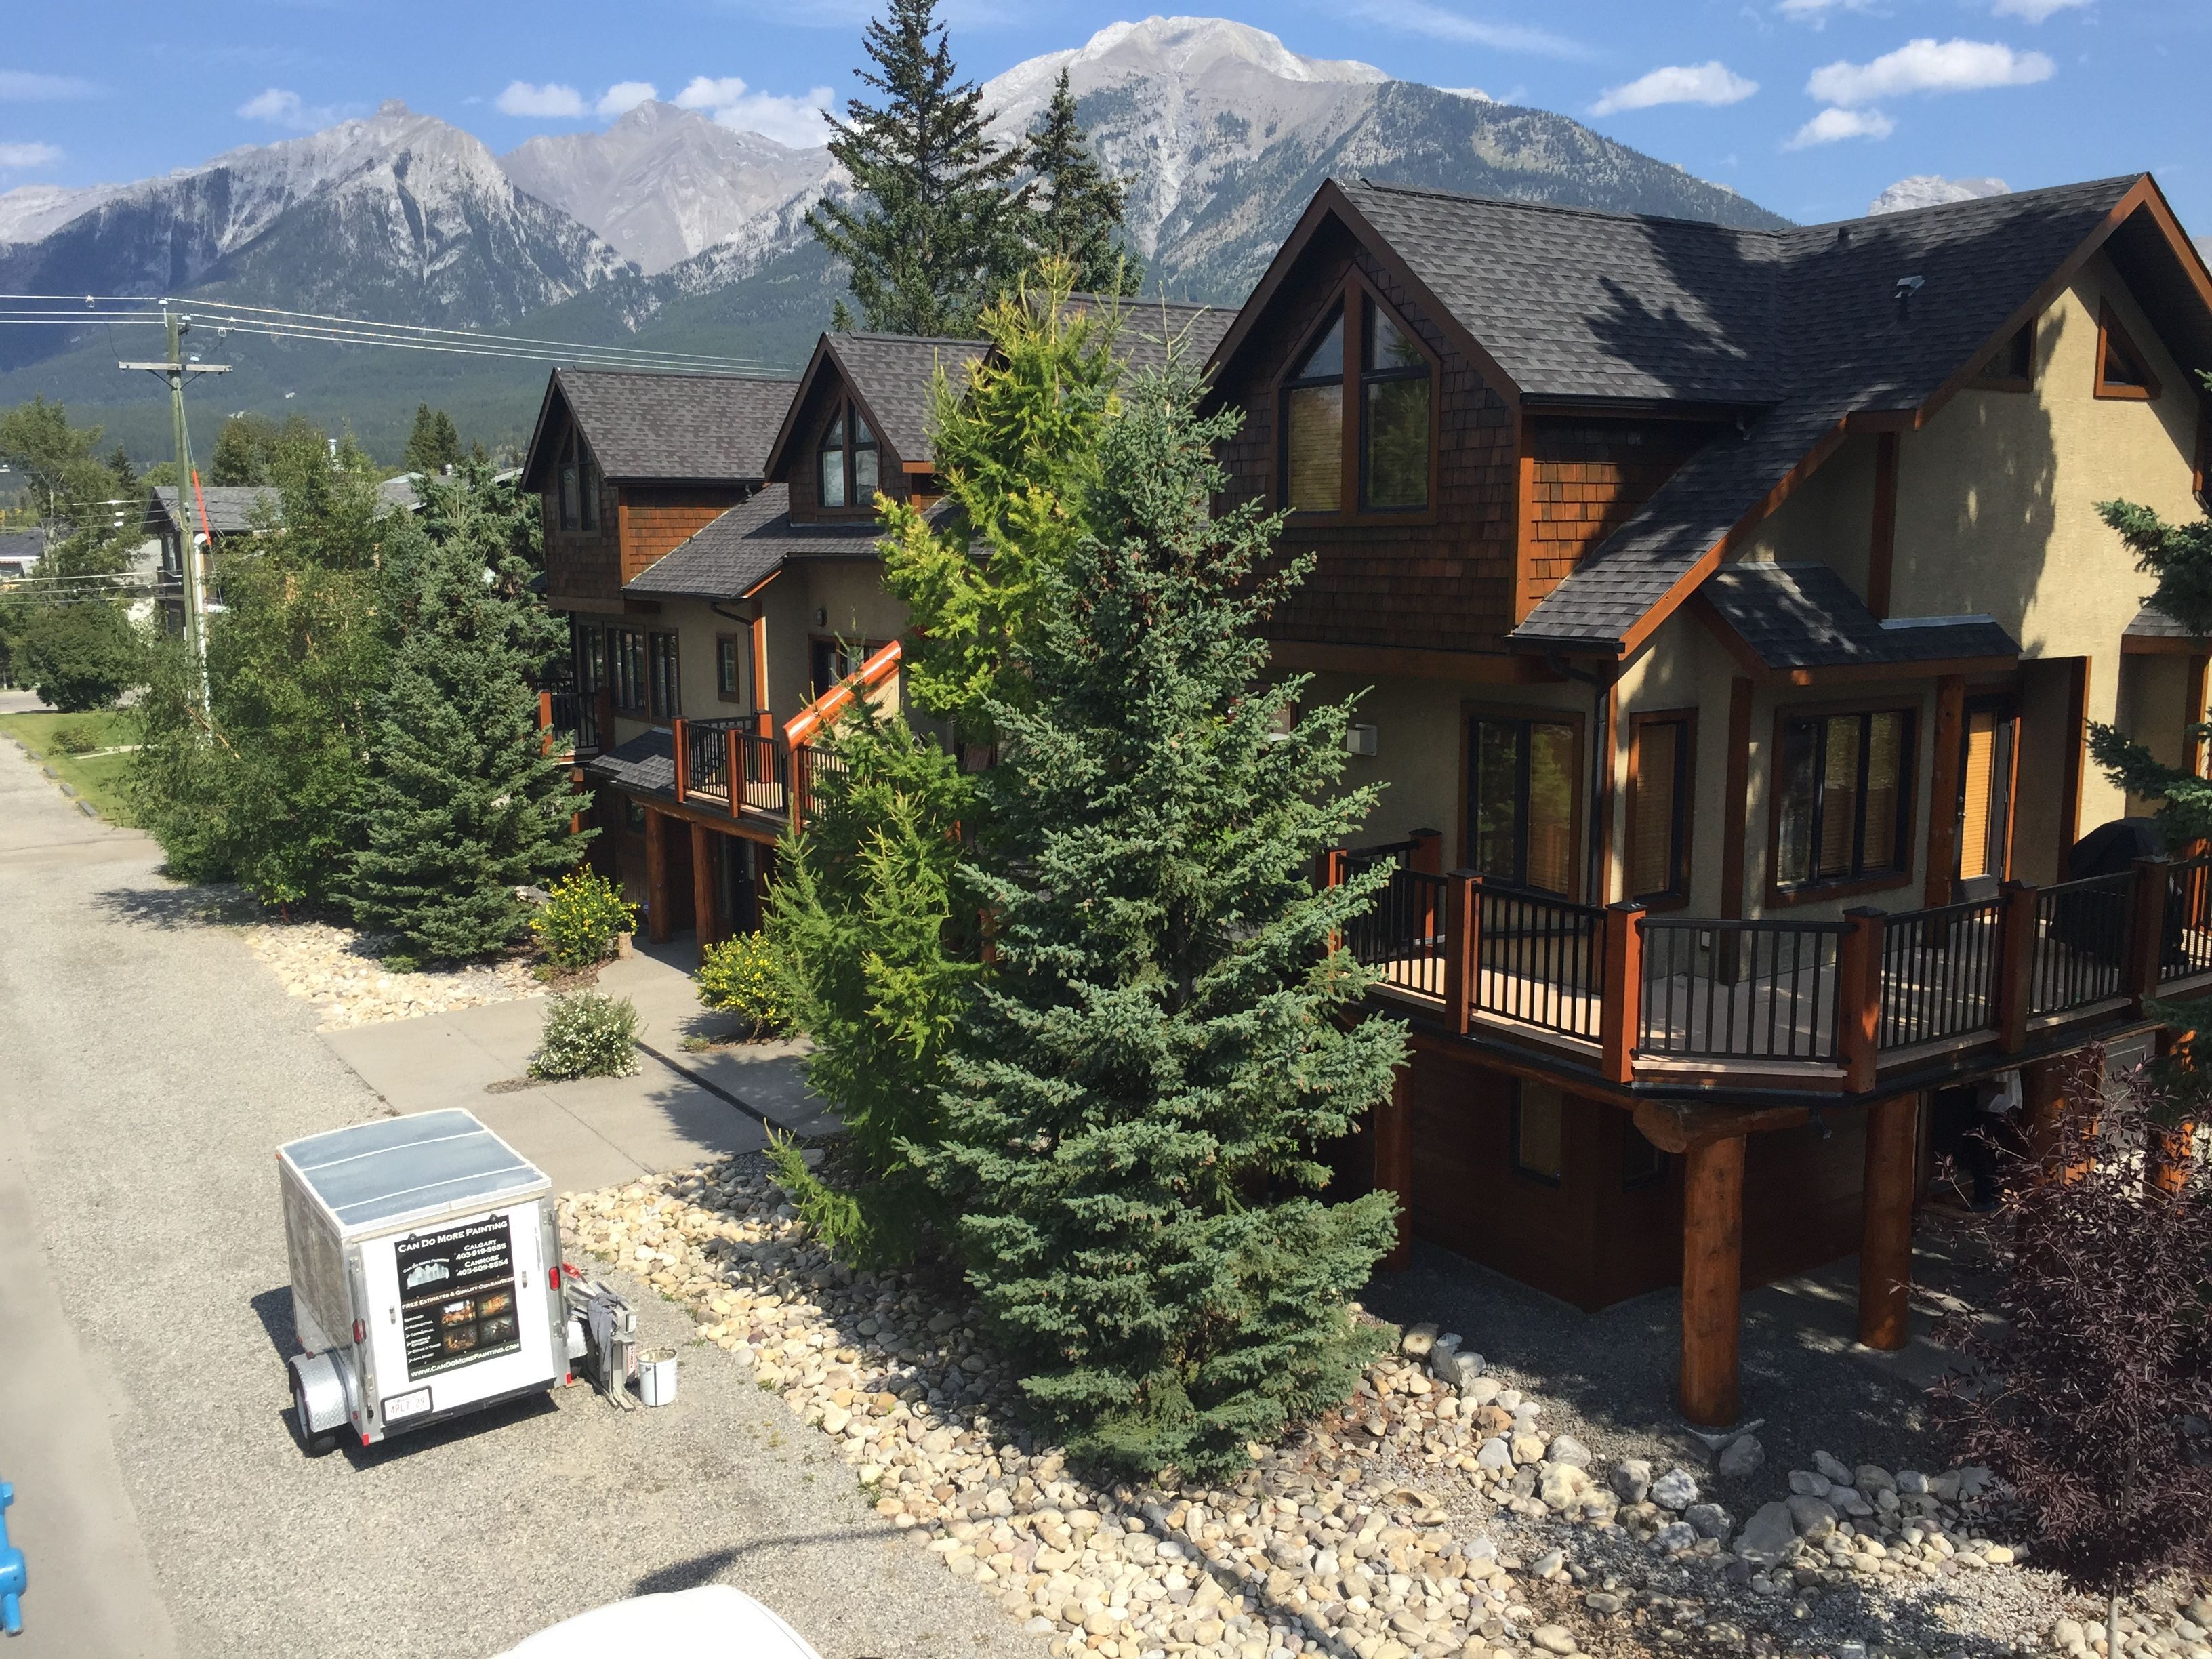 Exterior-Calgary-Okotoks-Airdrie-Canmore-Painters